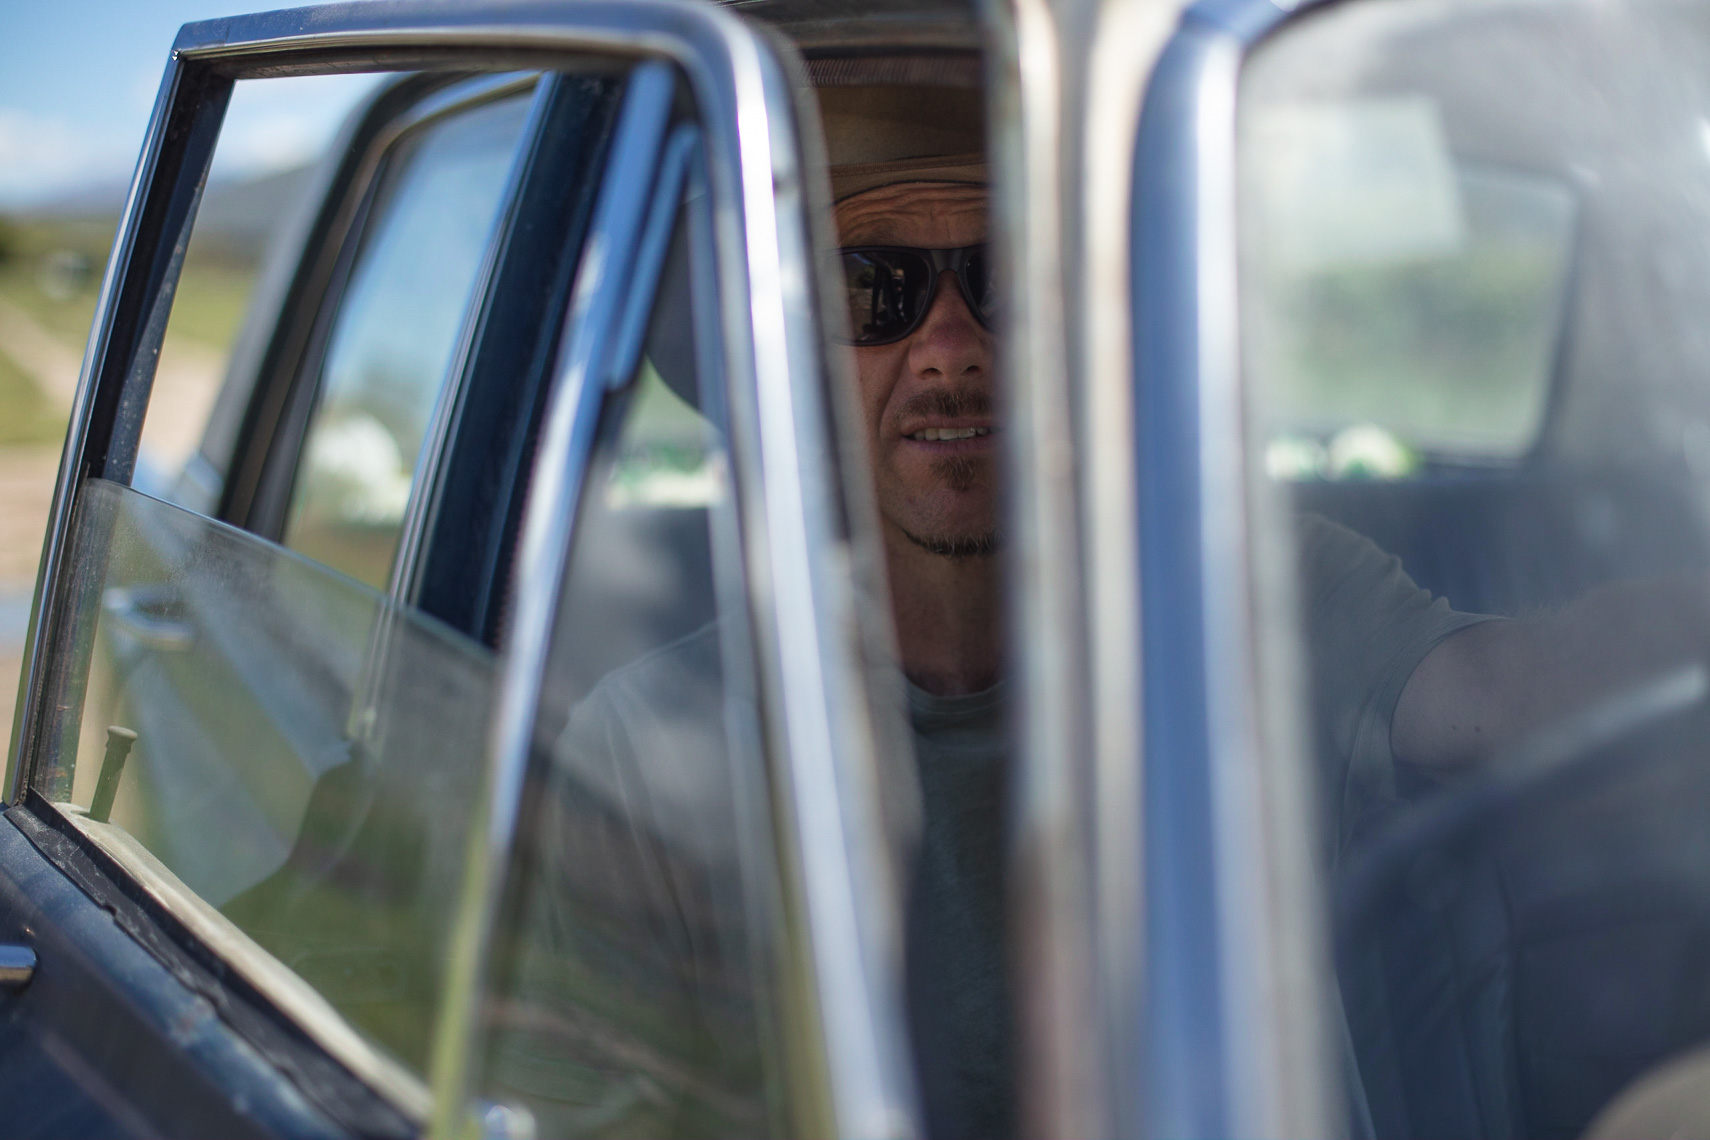 Man sitting in driving seat of his vintage car by Paul Green Photographer